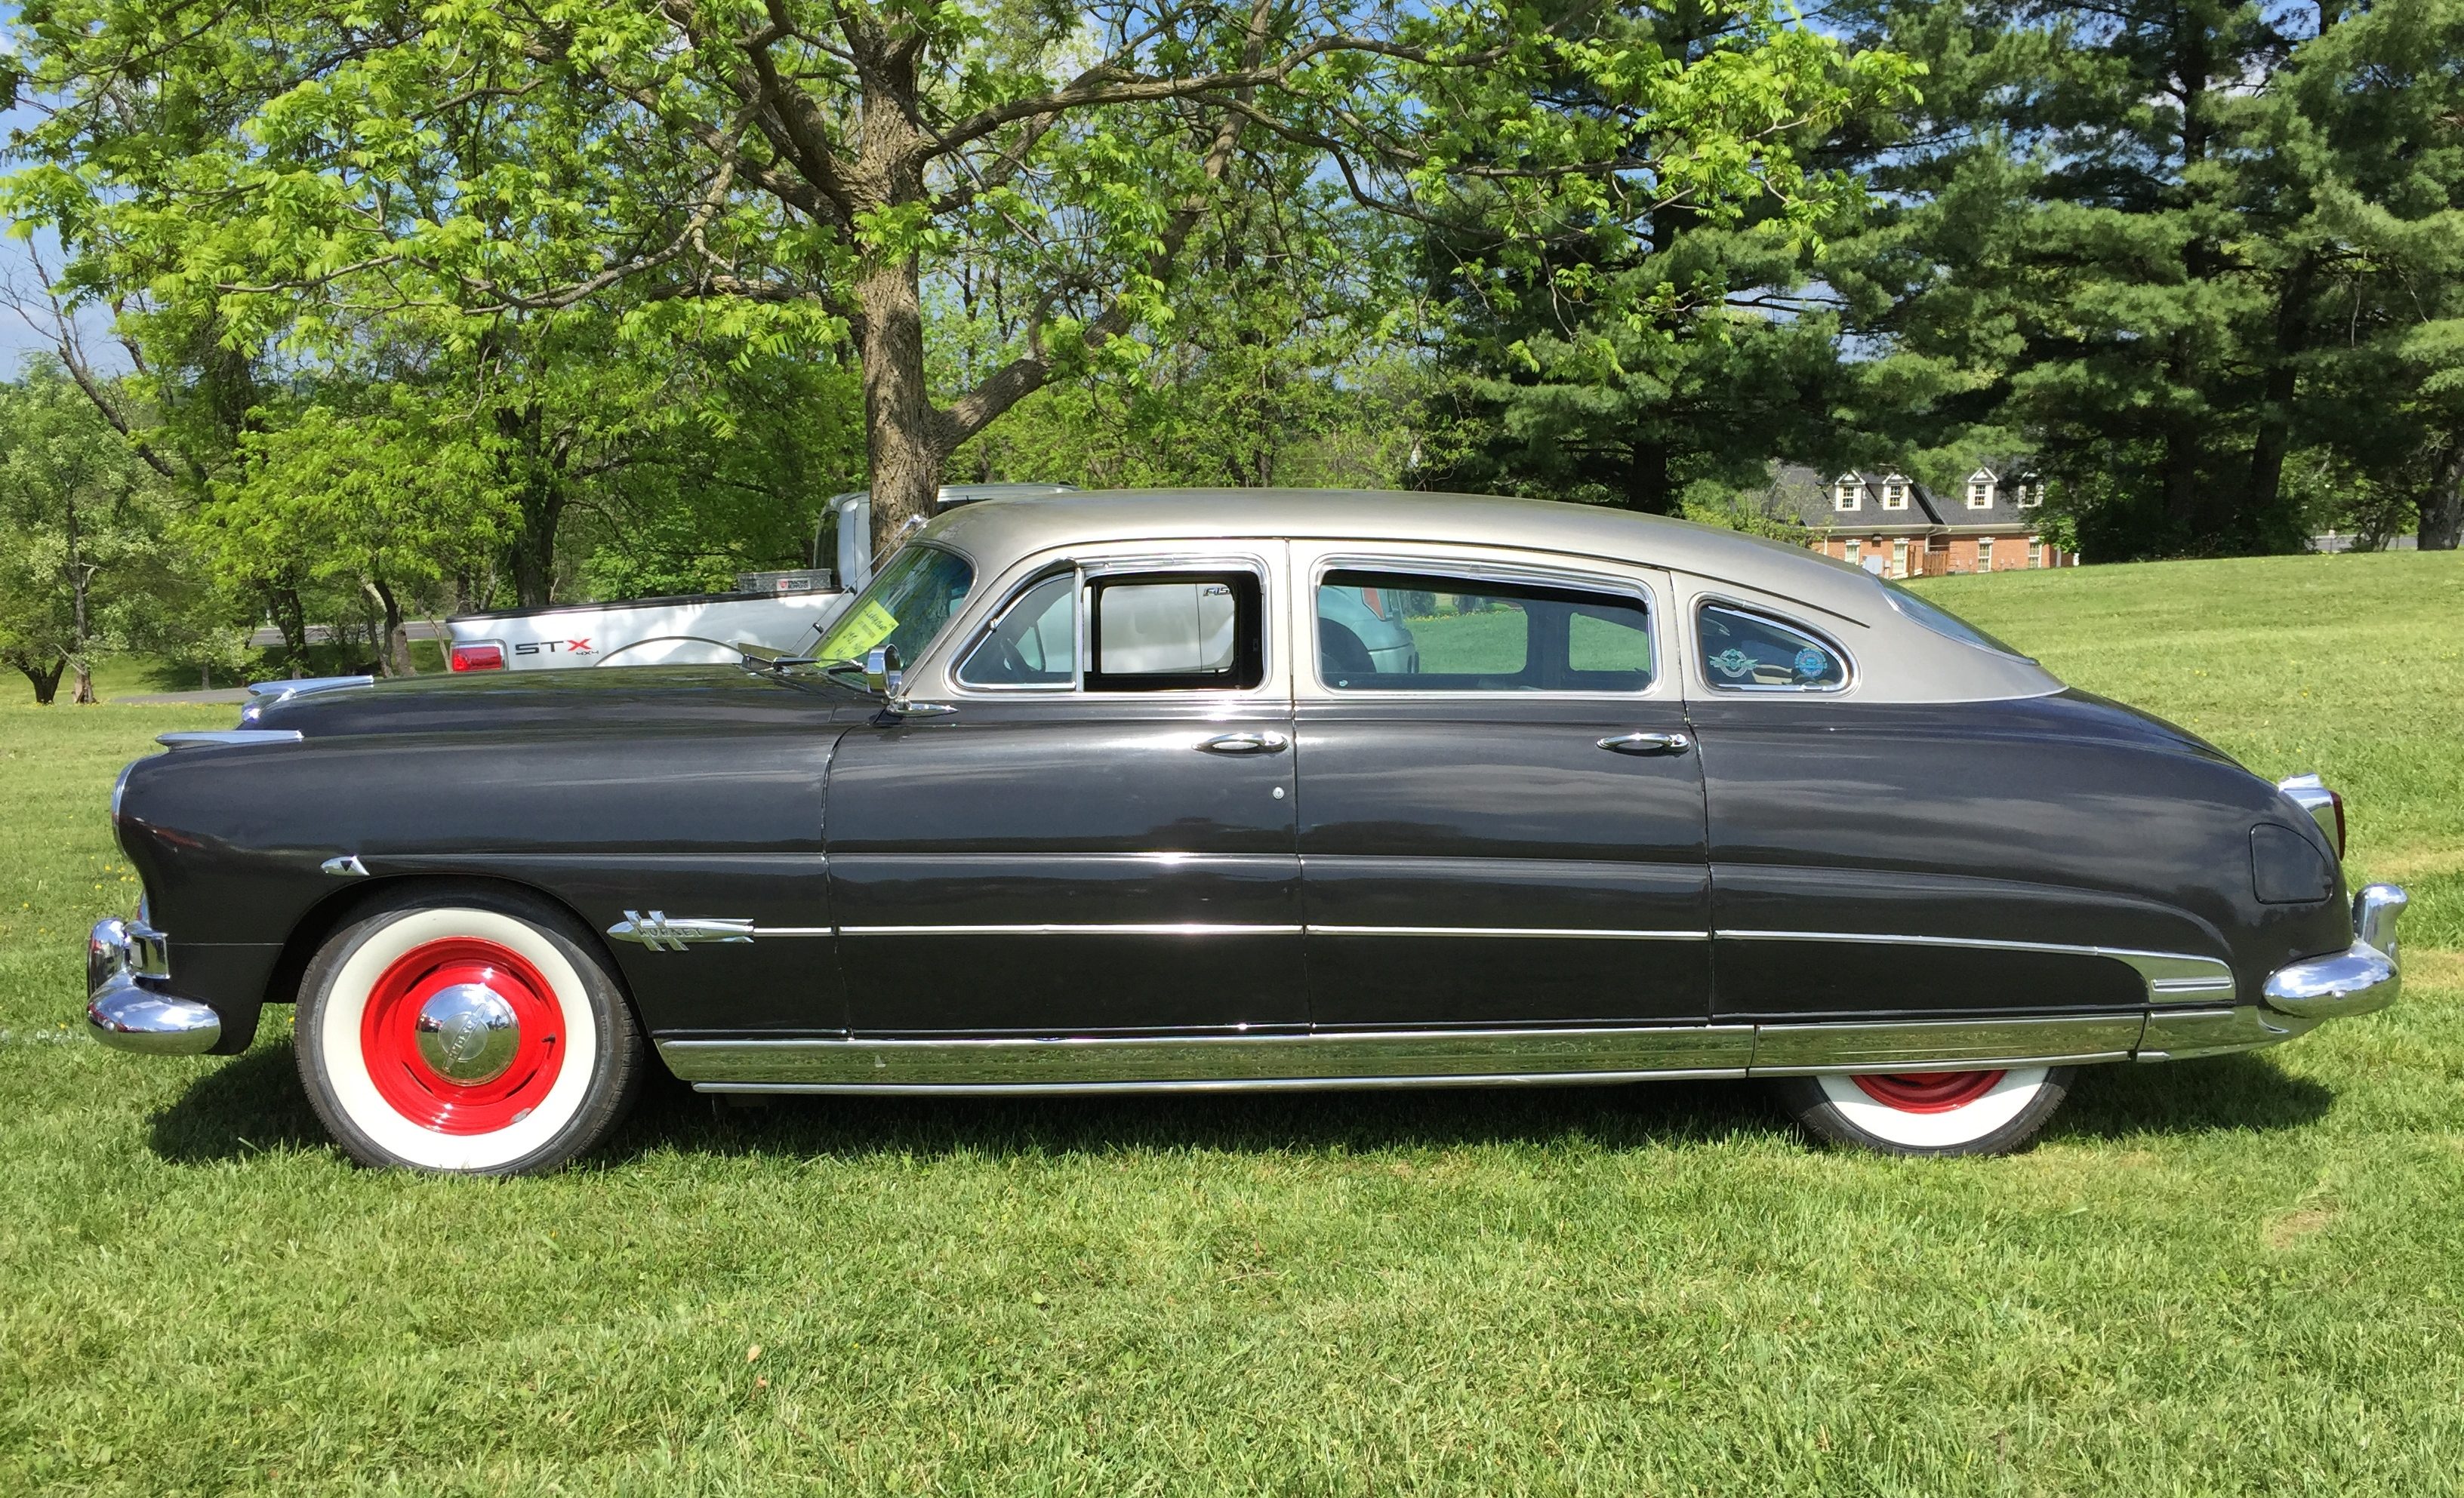 1951 hudson hornet sedan at 2015 shenandoah aaca meet 4of7jpg